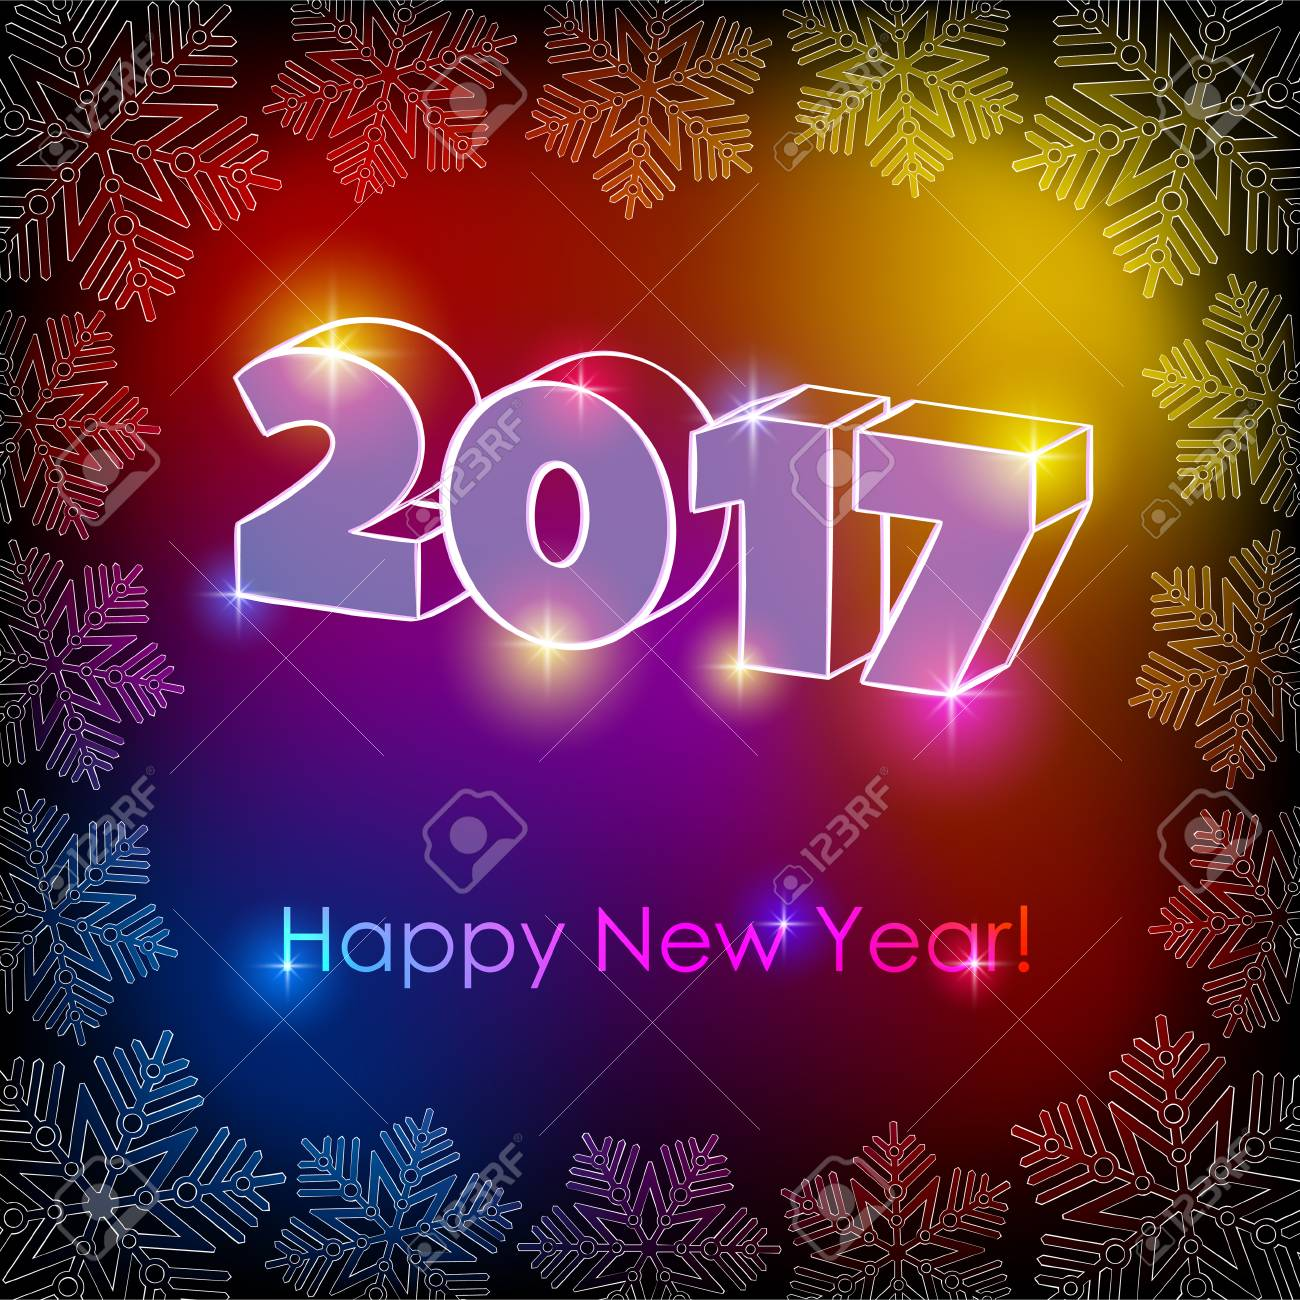 Illustration of happy new year greeting on a colorful background illustration of happy new year greeting on a colorful background stock vector 69114758 kristyandbryce Image collections